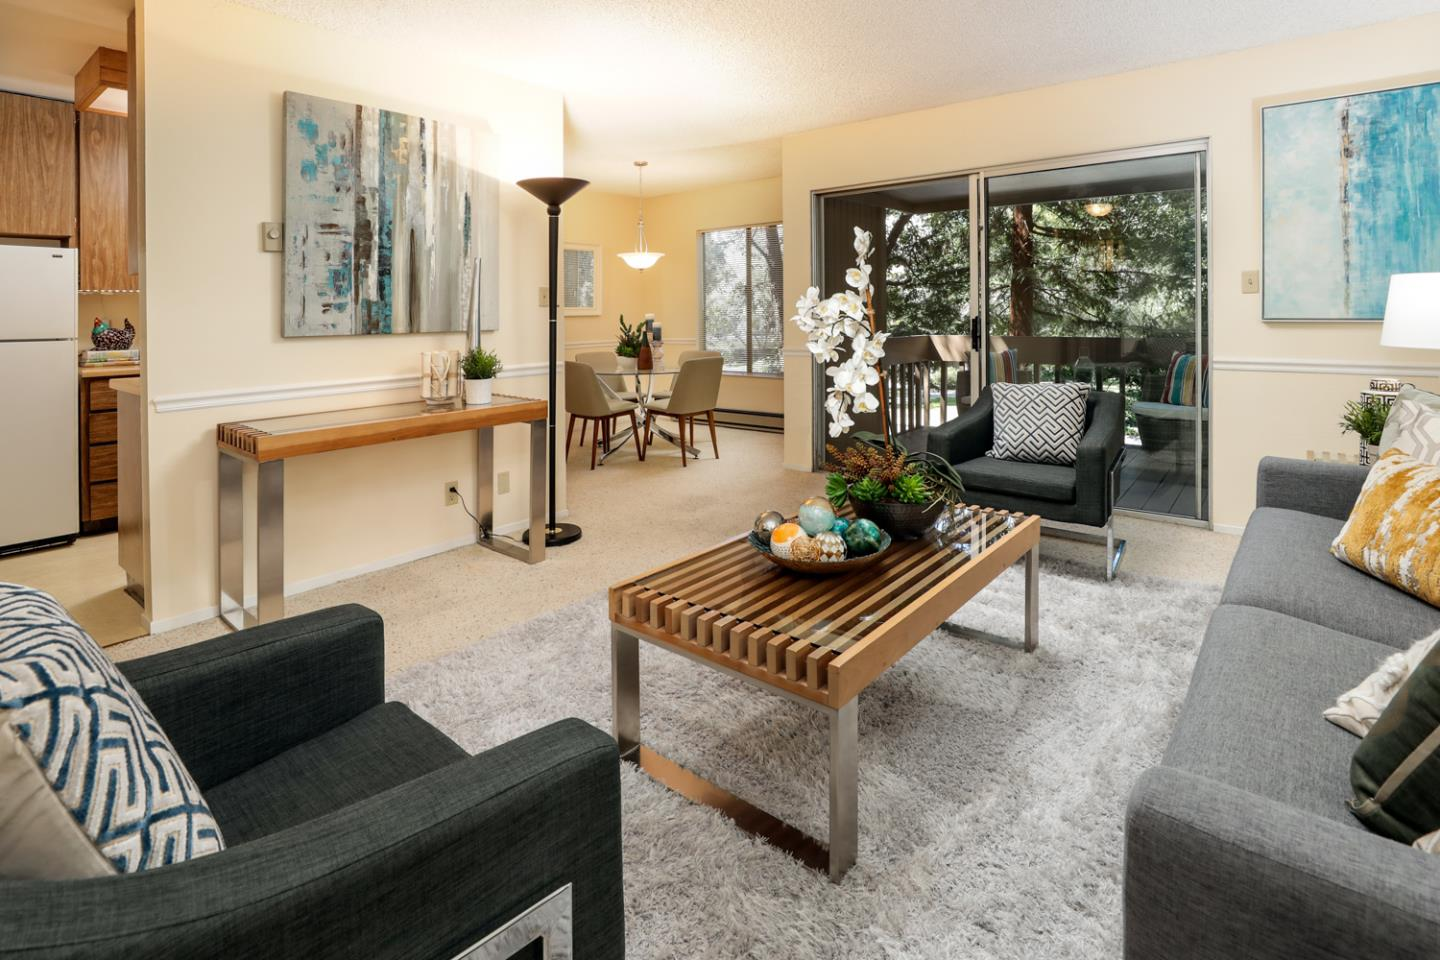 Best priced 1 bedroom condo in Mountain View.  Top floor unit at highly desired Cypress Point Lakes.  Just 2 blocks to downtown Mountain View's many shops, restaurants and CalTrain.  Cypress Point Lakes offers a park like setting with lakes and streams, greenbelt, towering redwoods, 2 pools, spa, sauna and tennis courts.  This is the best value in Mountain View.  Freshly painted and ready for new buyer.